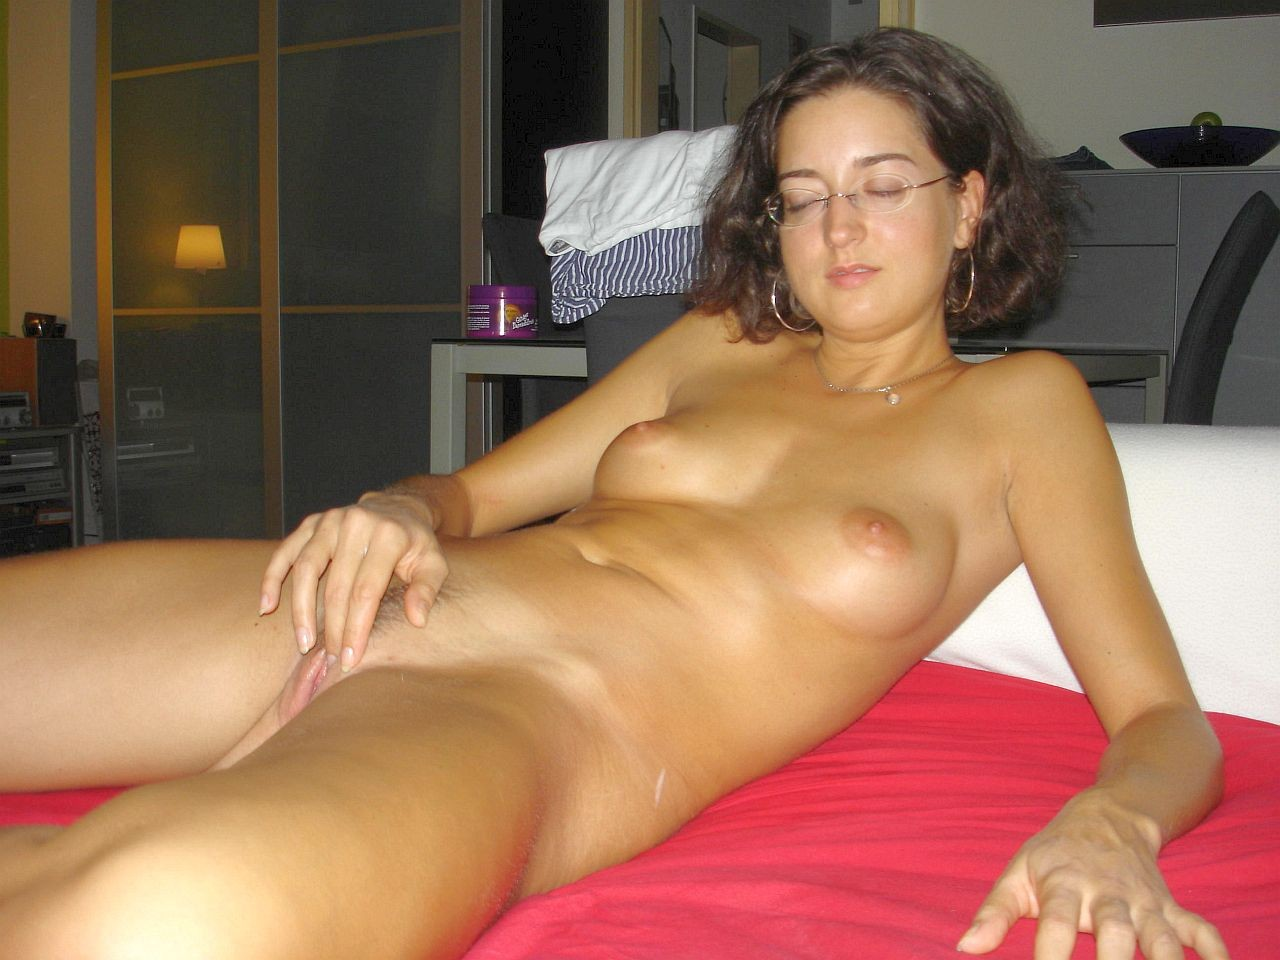 Hot amature nude women, cumshot taylor swift nude